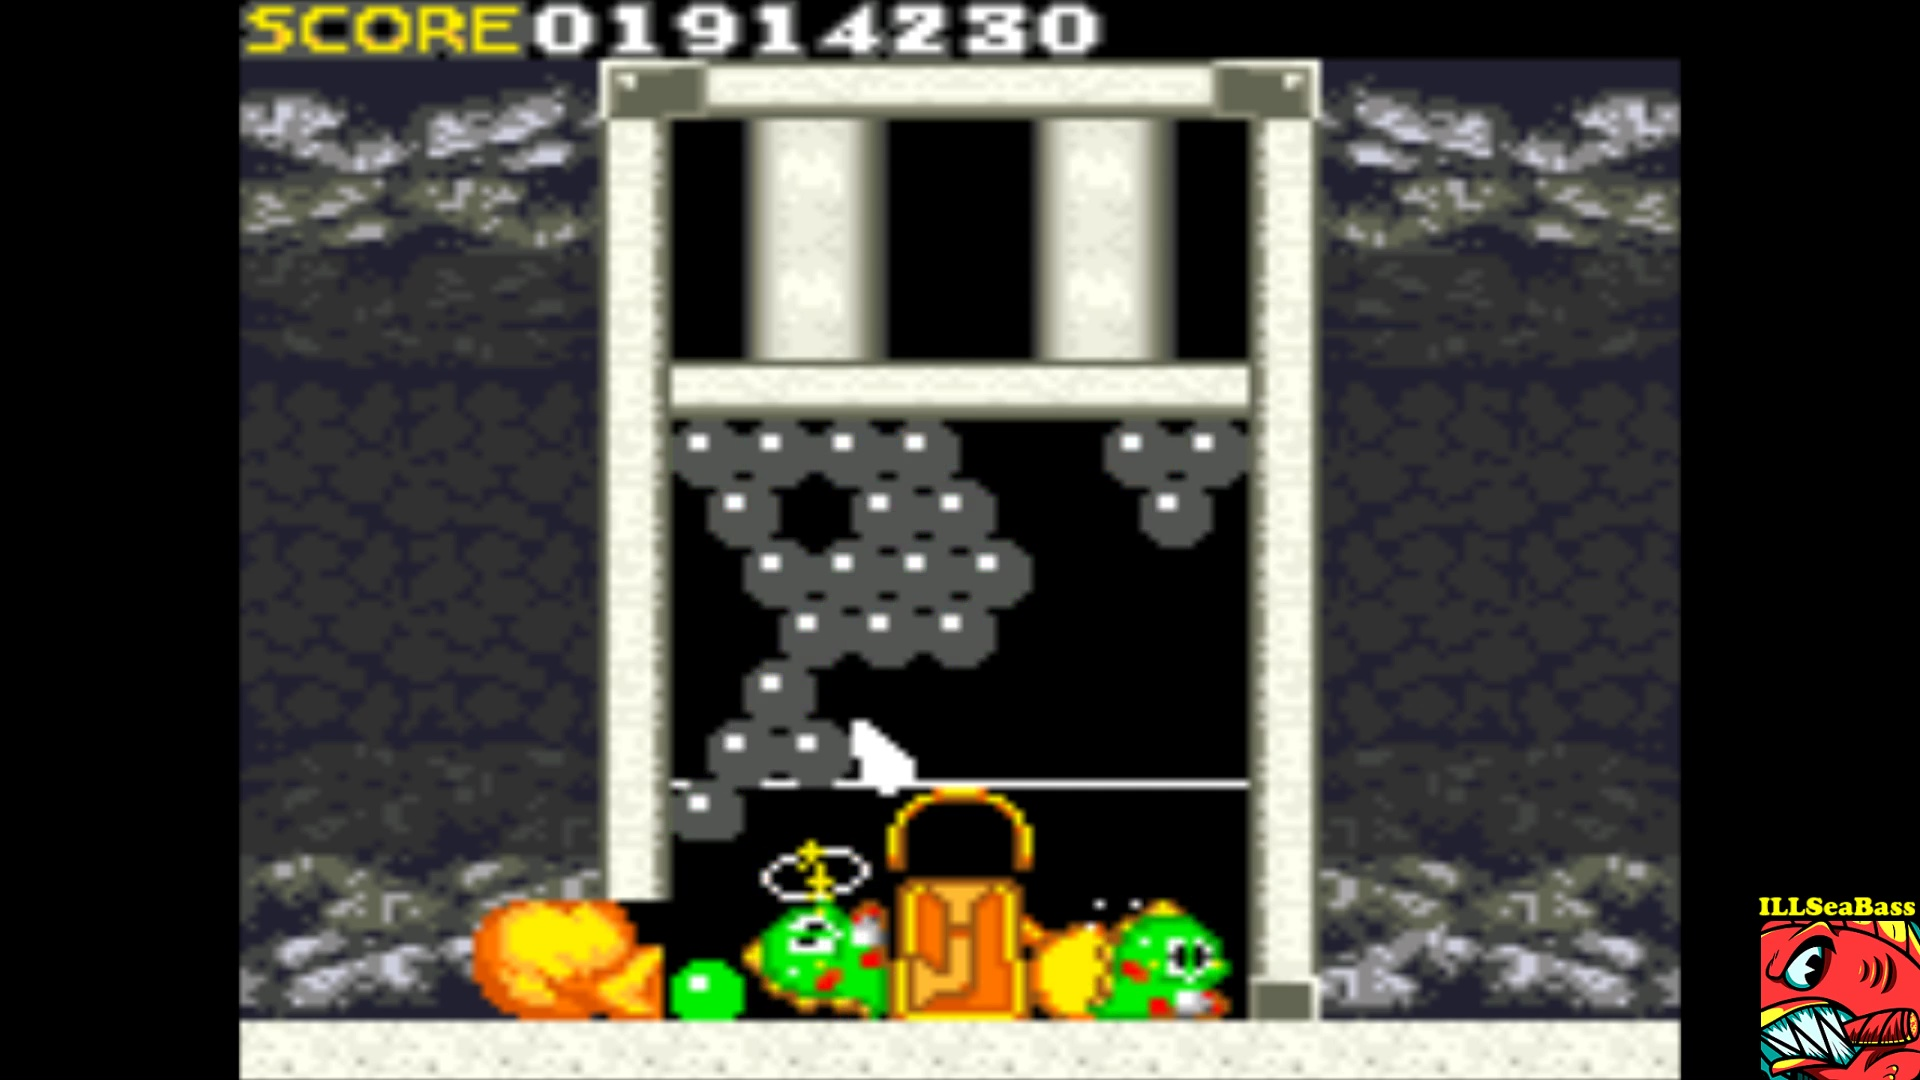 ILLSeaBass: Bust-A-Move [Puzzle] (Sega Game Gear Emulated) 1,914,230 points on 2017-09-24 12:38:32